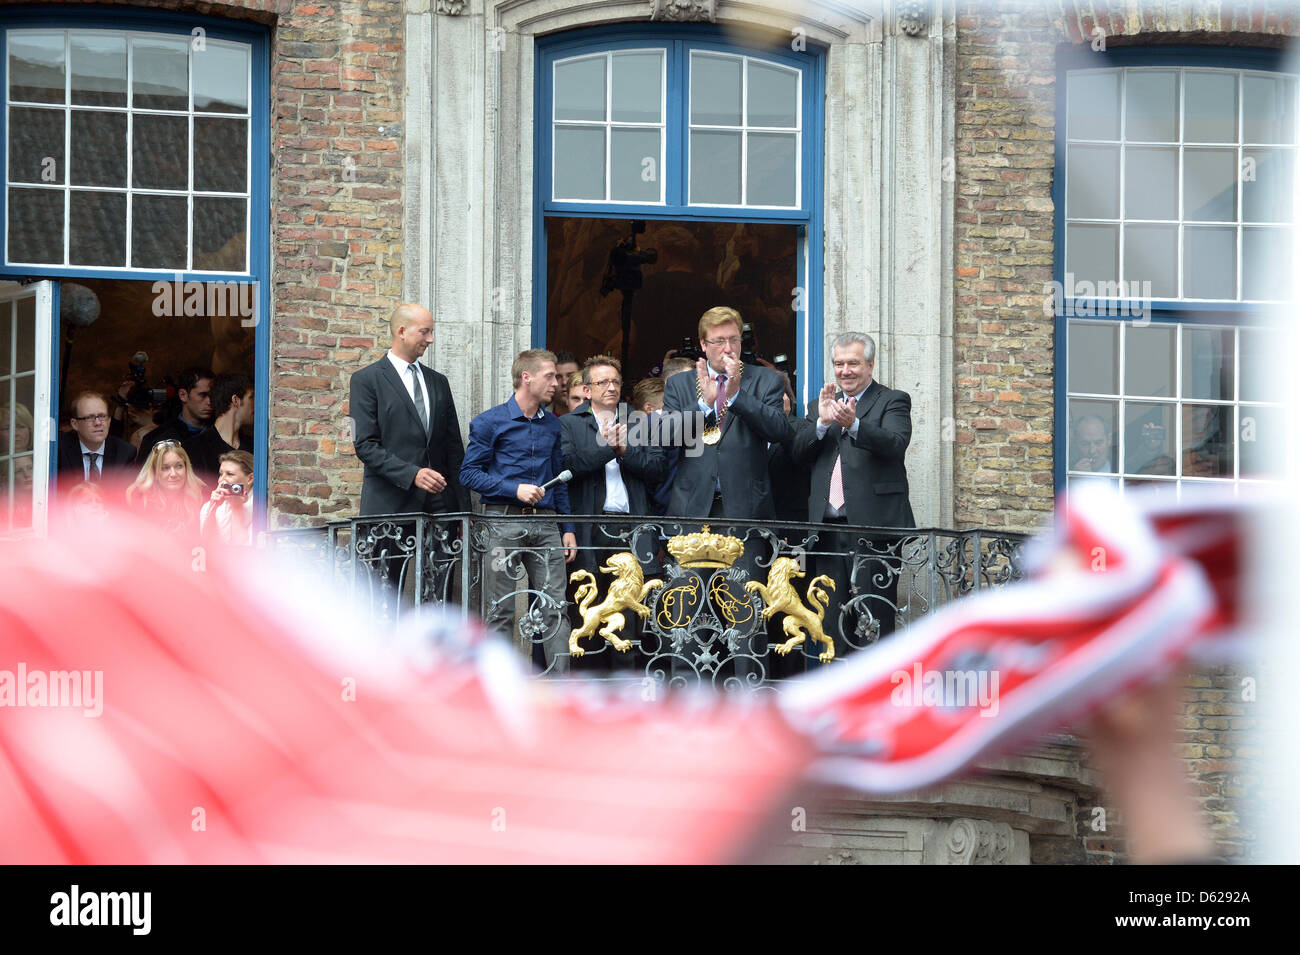 Duesseldorf's head coach Norbert Meier (C) stands on the balcony of city hall and celebrates the promotion of - Stock Image